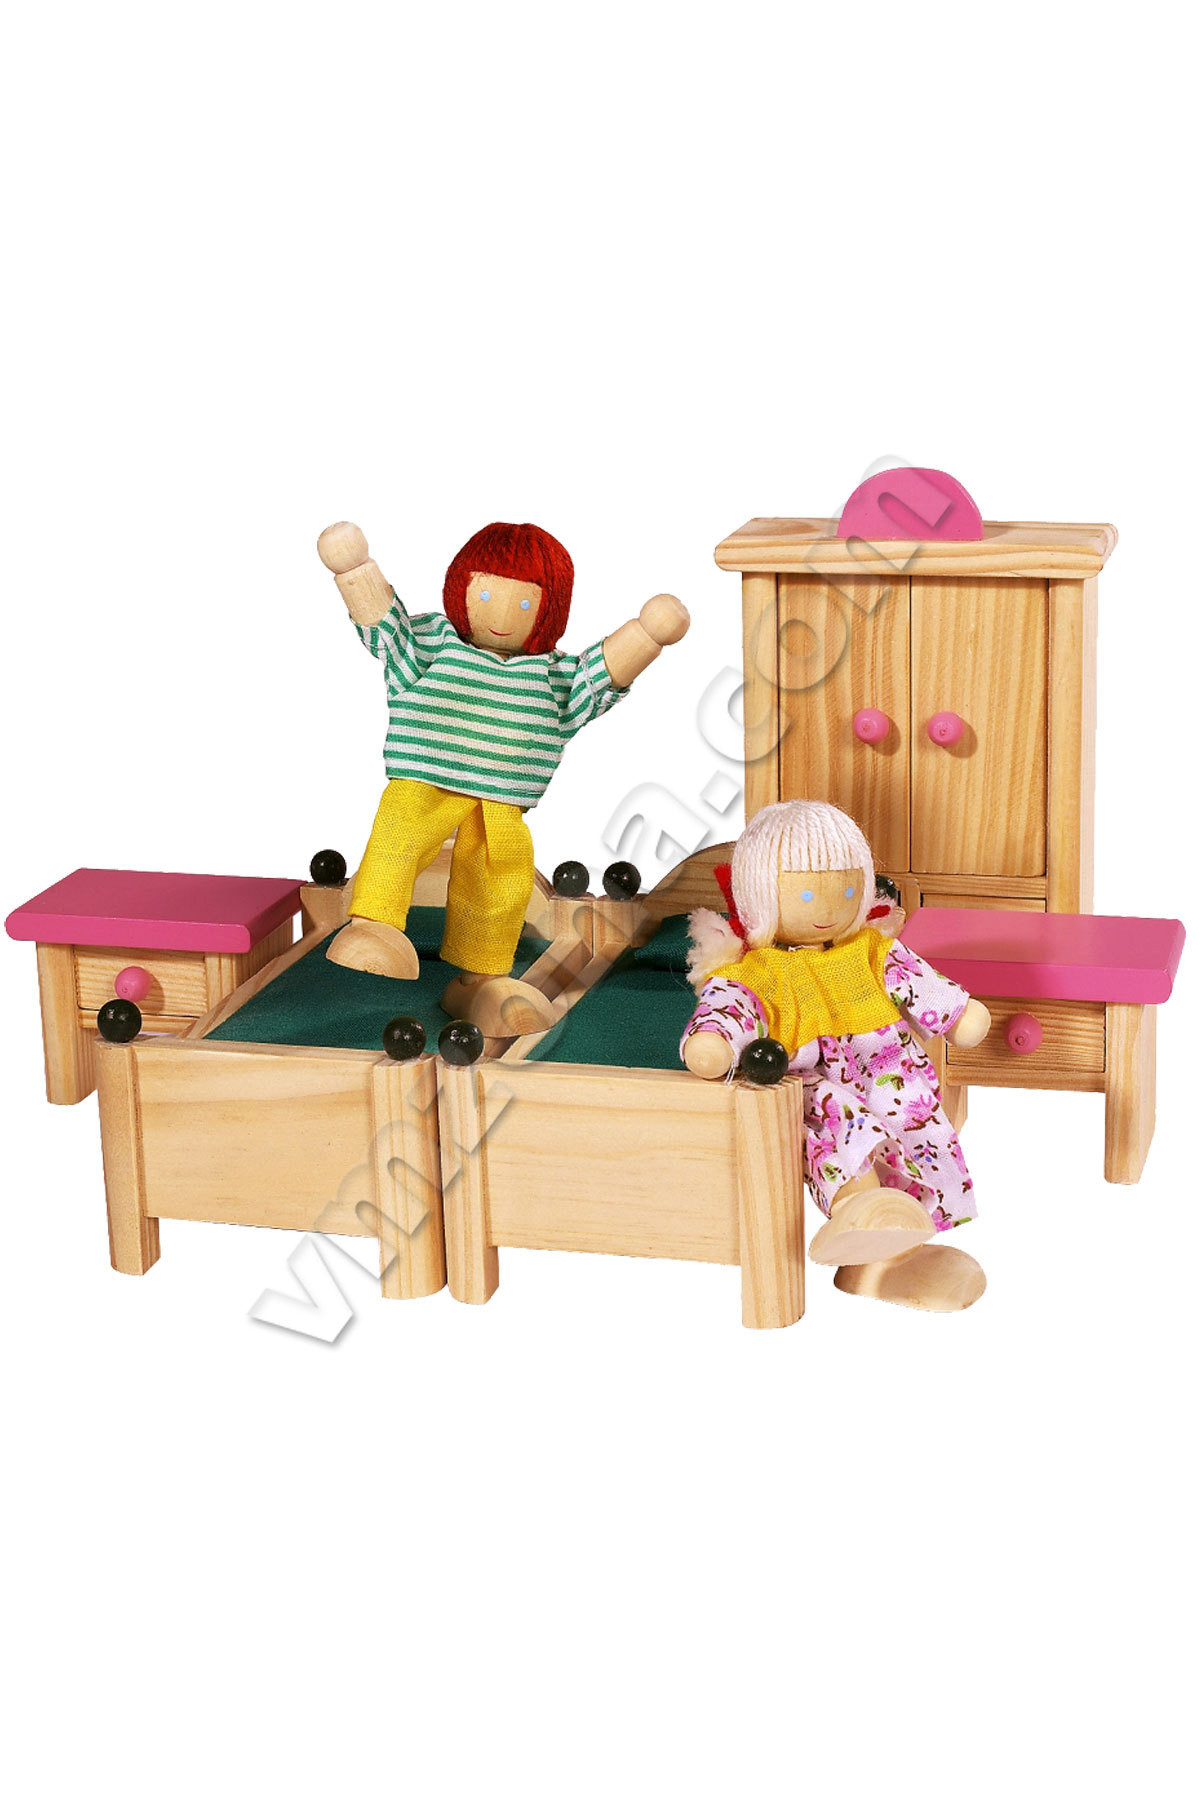 Are women's roles in The Doll House portrayed as